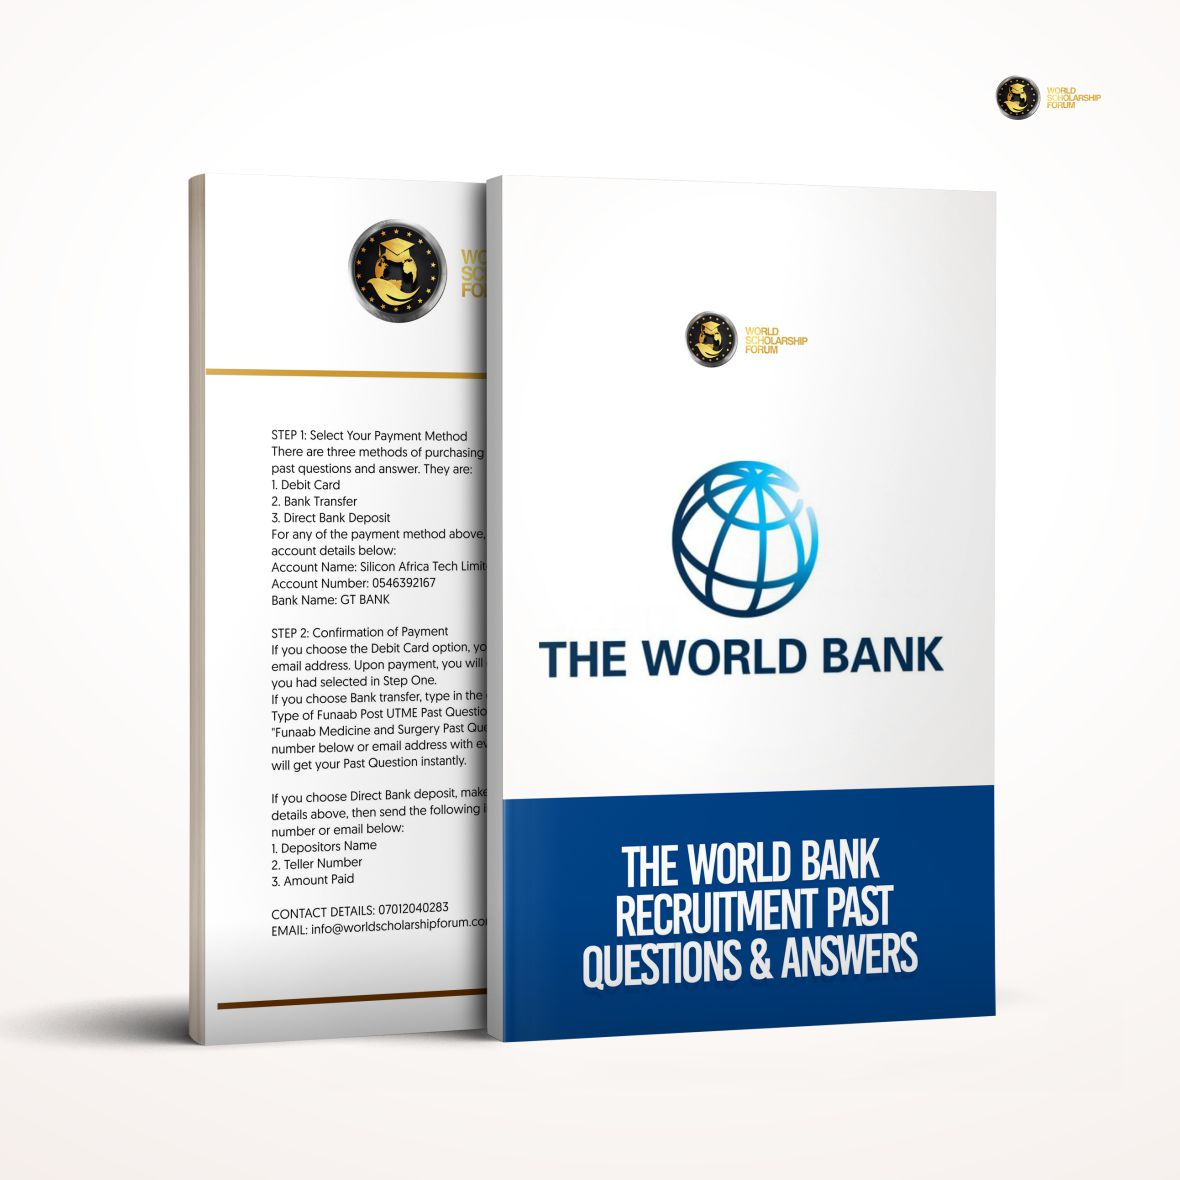 world-bank-recruitment-past-questions-answers